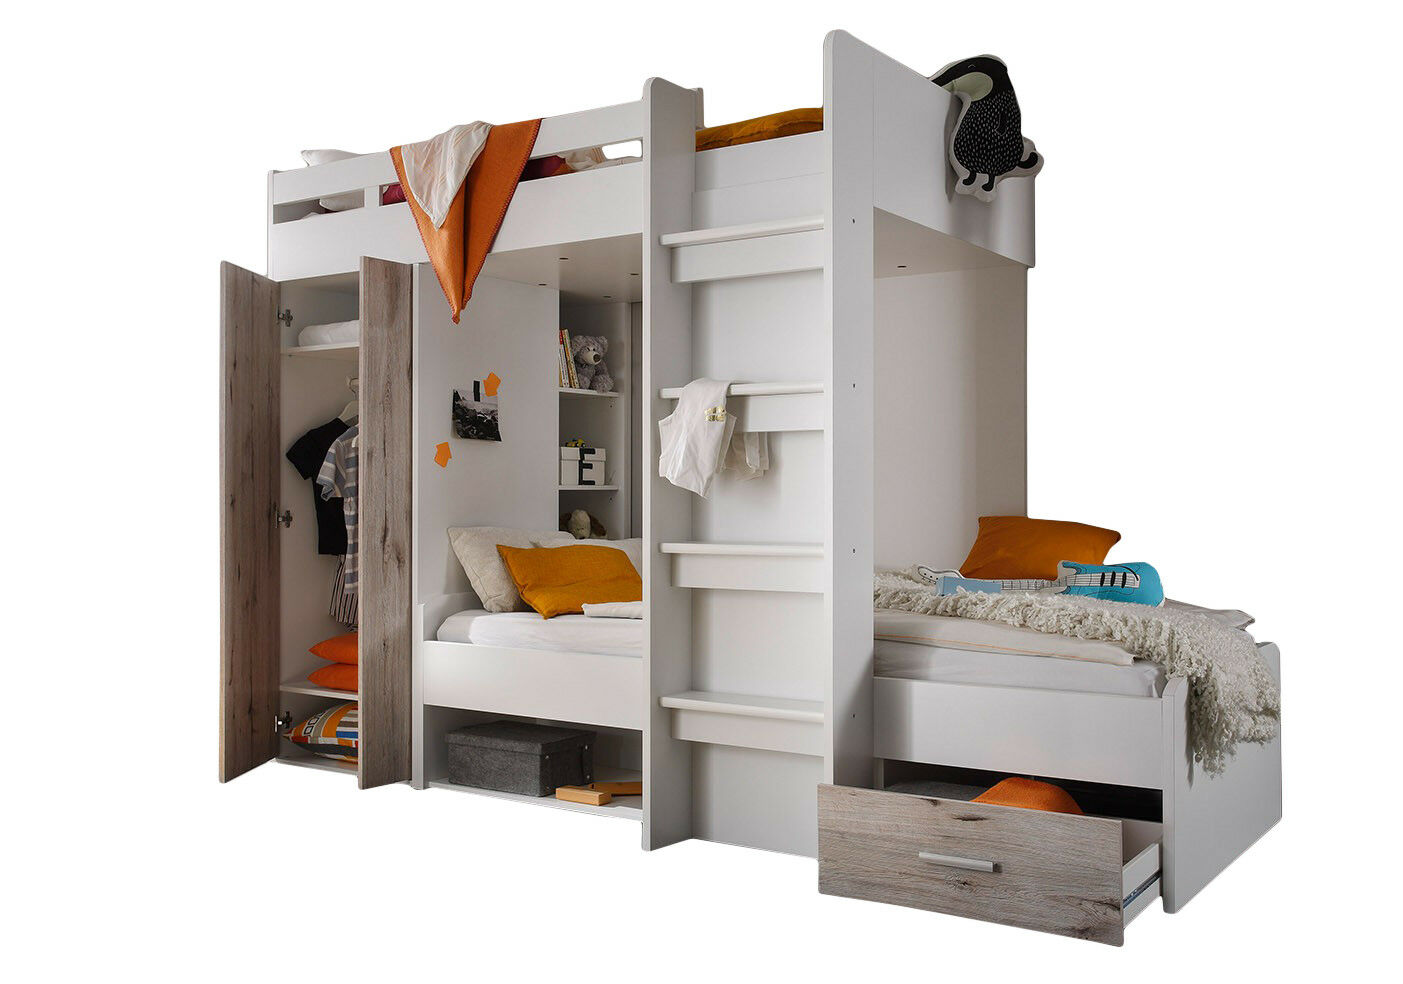 etagenbett inkl kleiderschrank schubkasten regale hochbett doppelbett stockbett eur 449 90. Black Bedroom Furniture Sets. Home Design Ideas